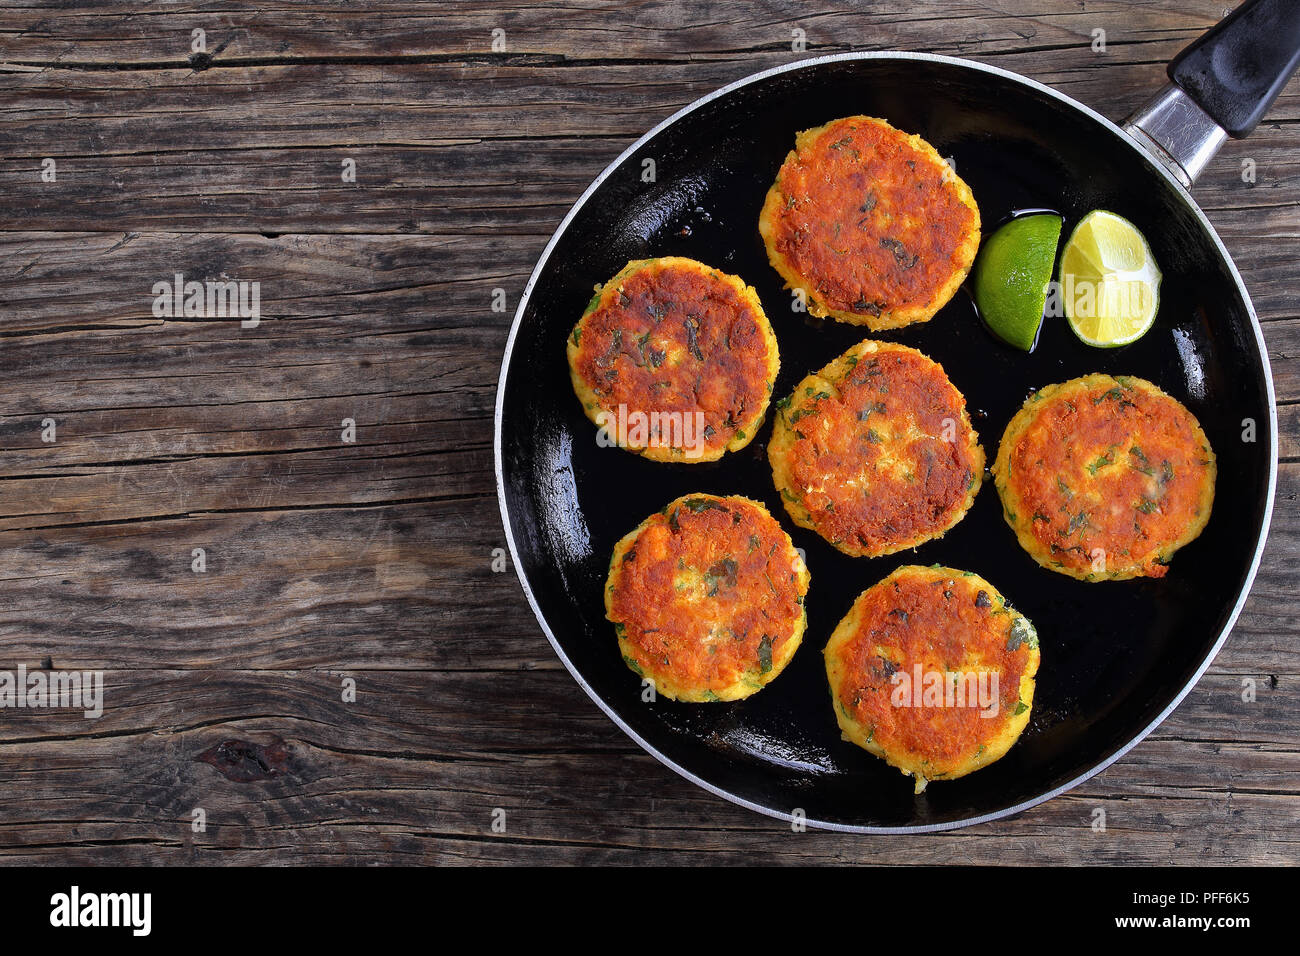 delicious fresh fried homemade fish cakes with mashed potato on skillet with lime slices, on dark wooden table, classic recipe, view from above - Stock Image